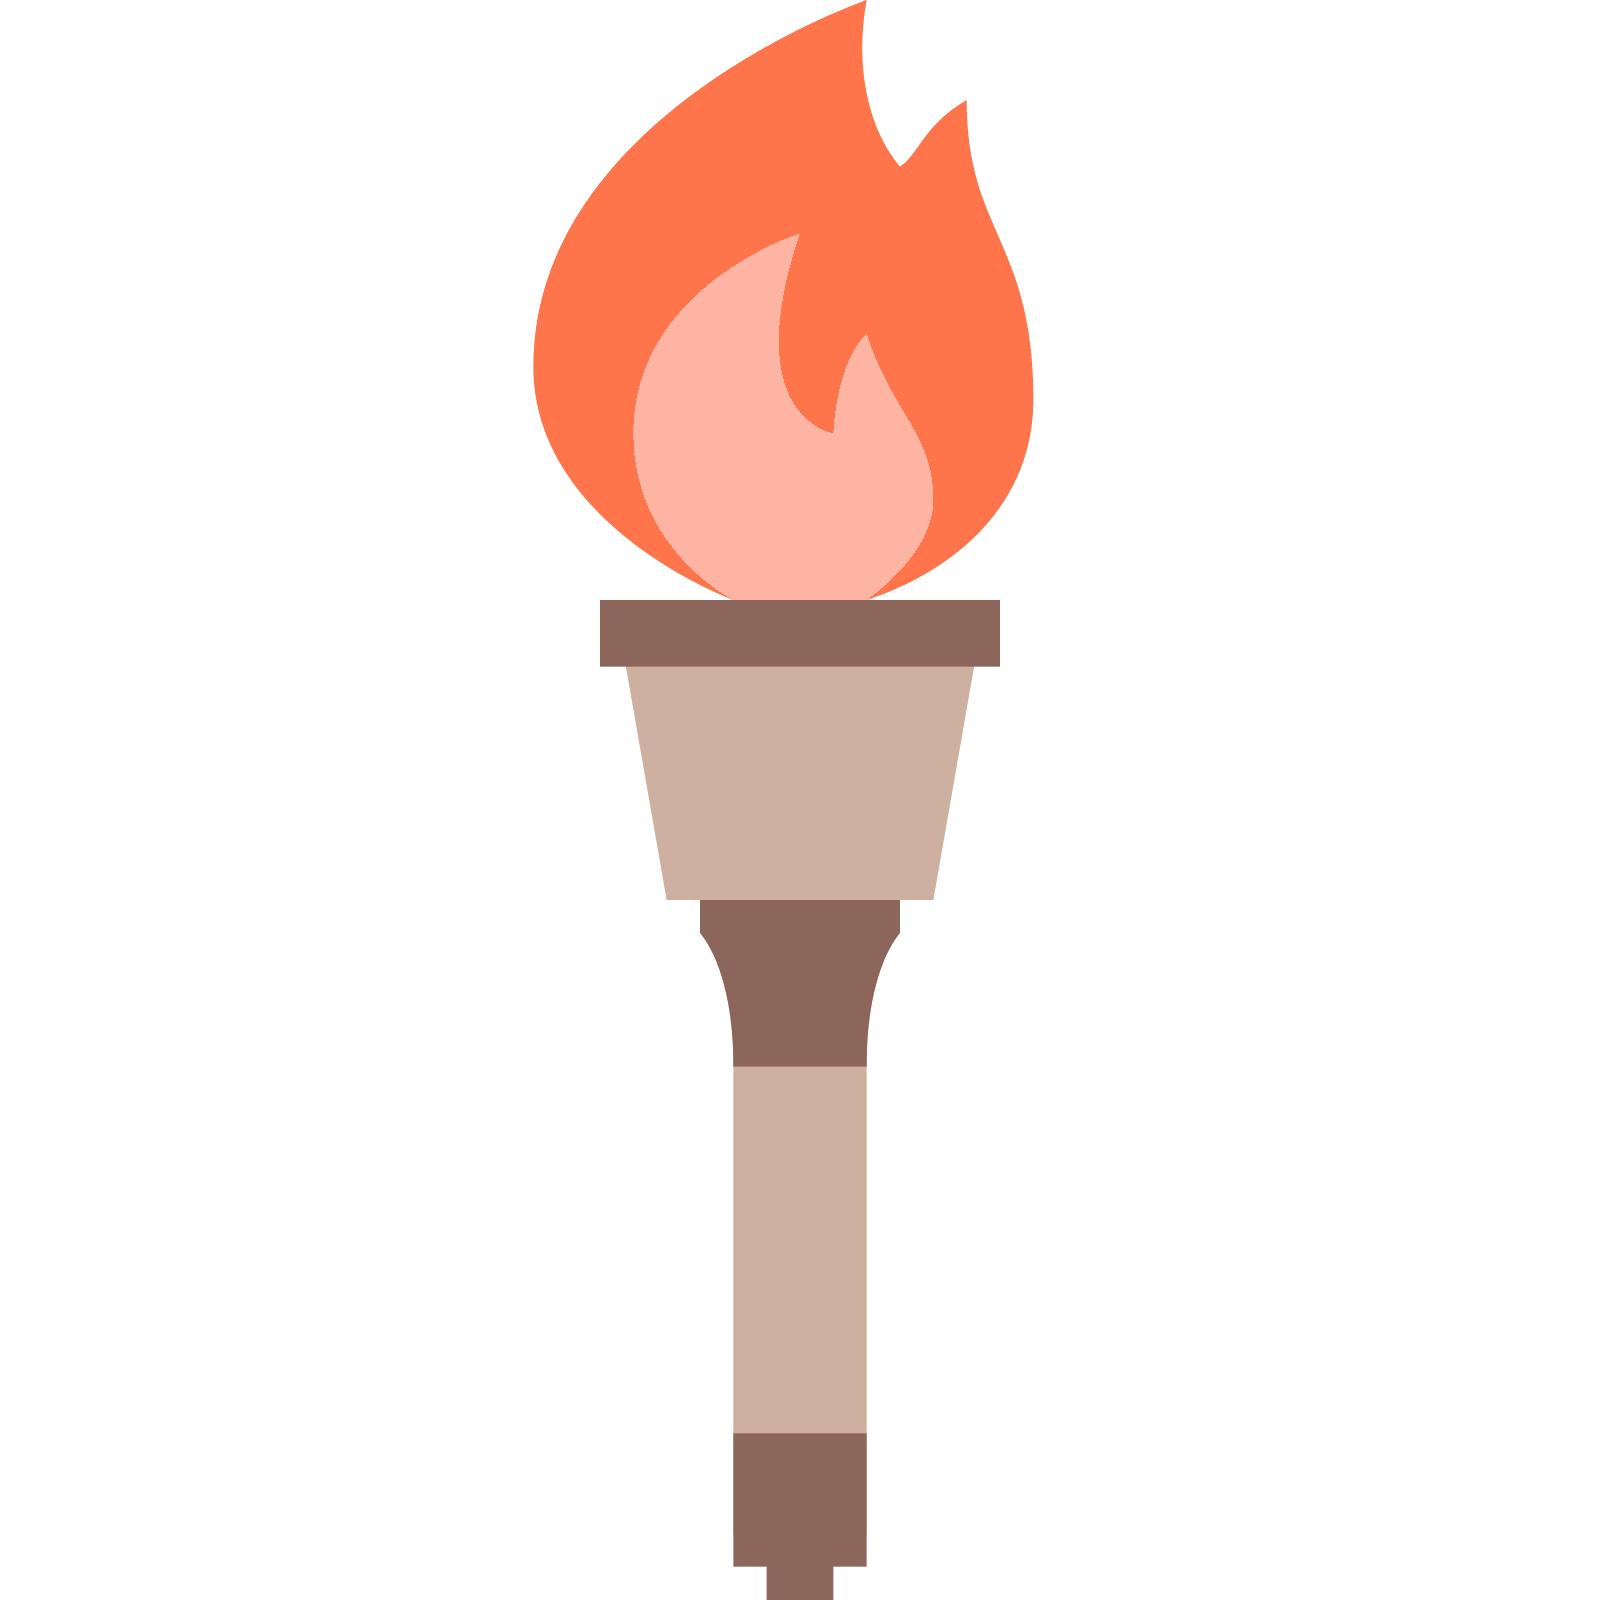 Antorcha png 4 » PNG Image.